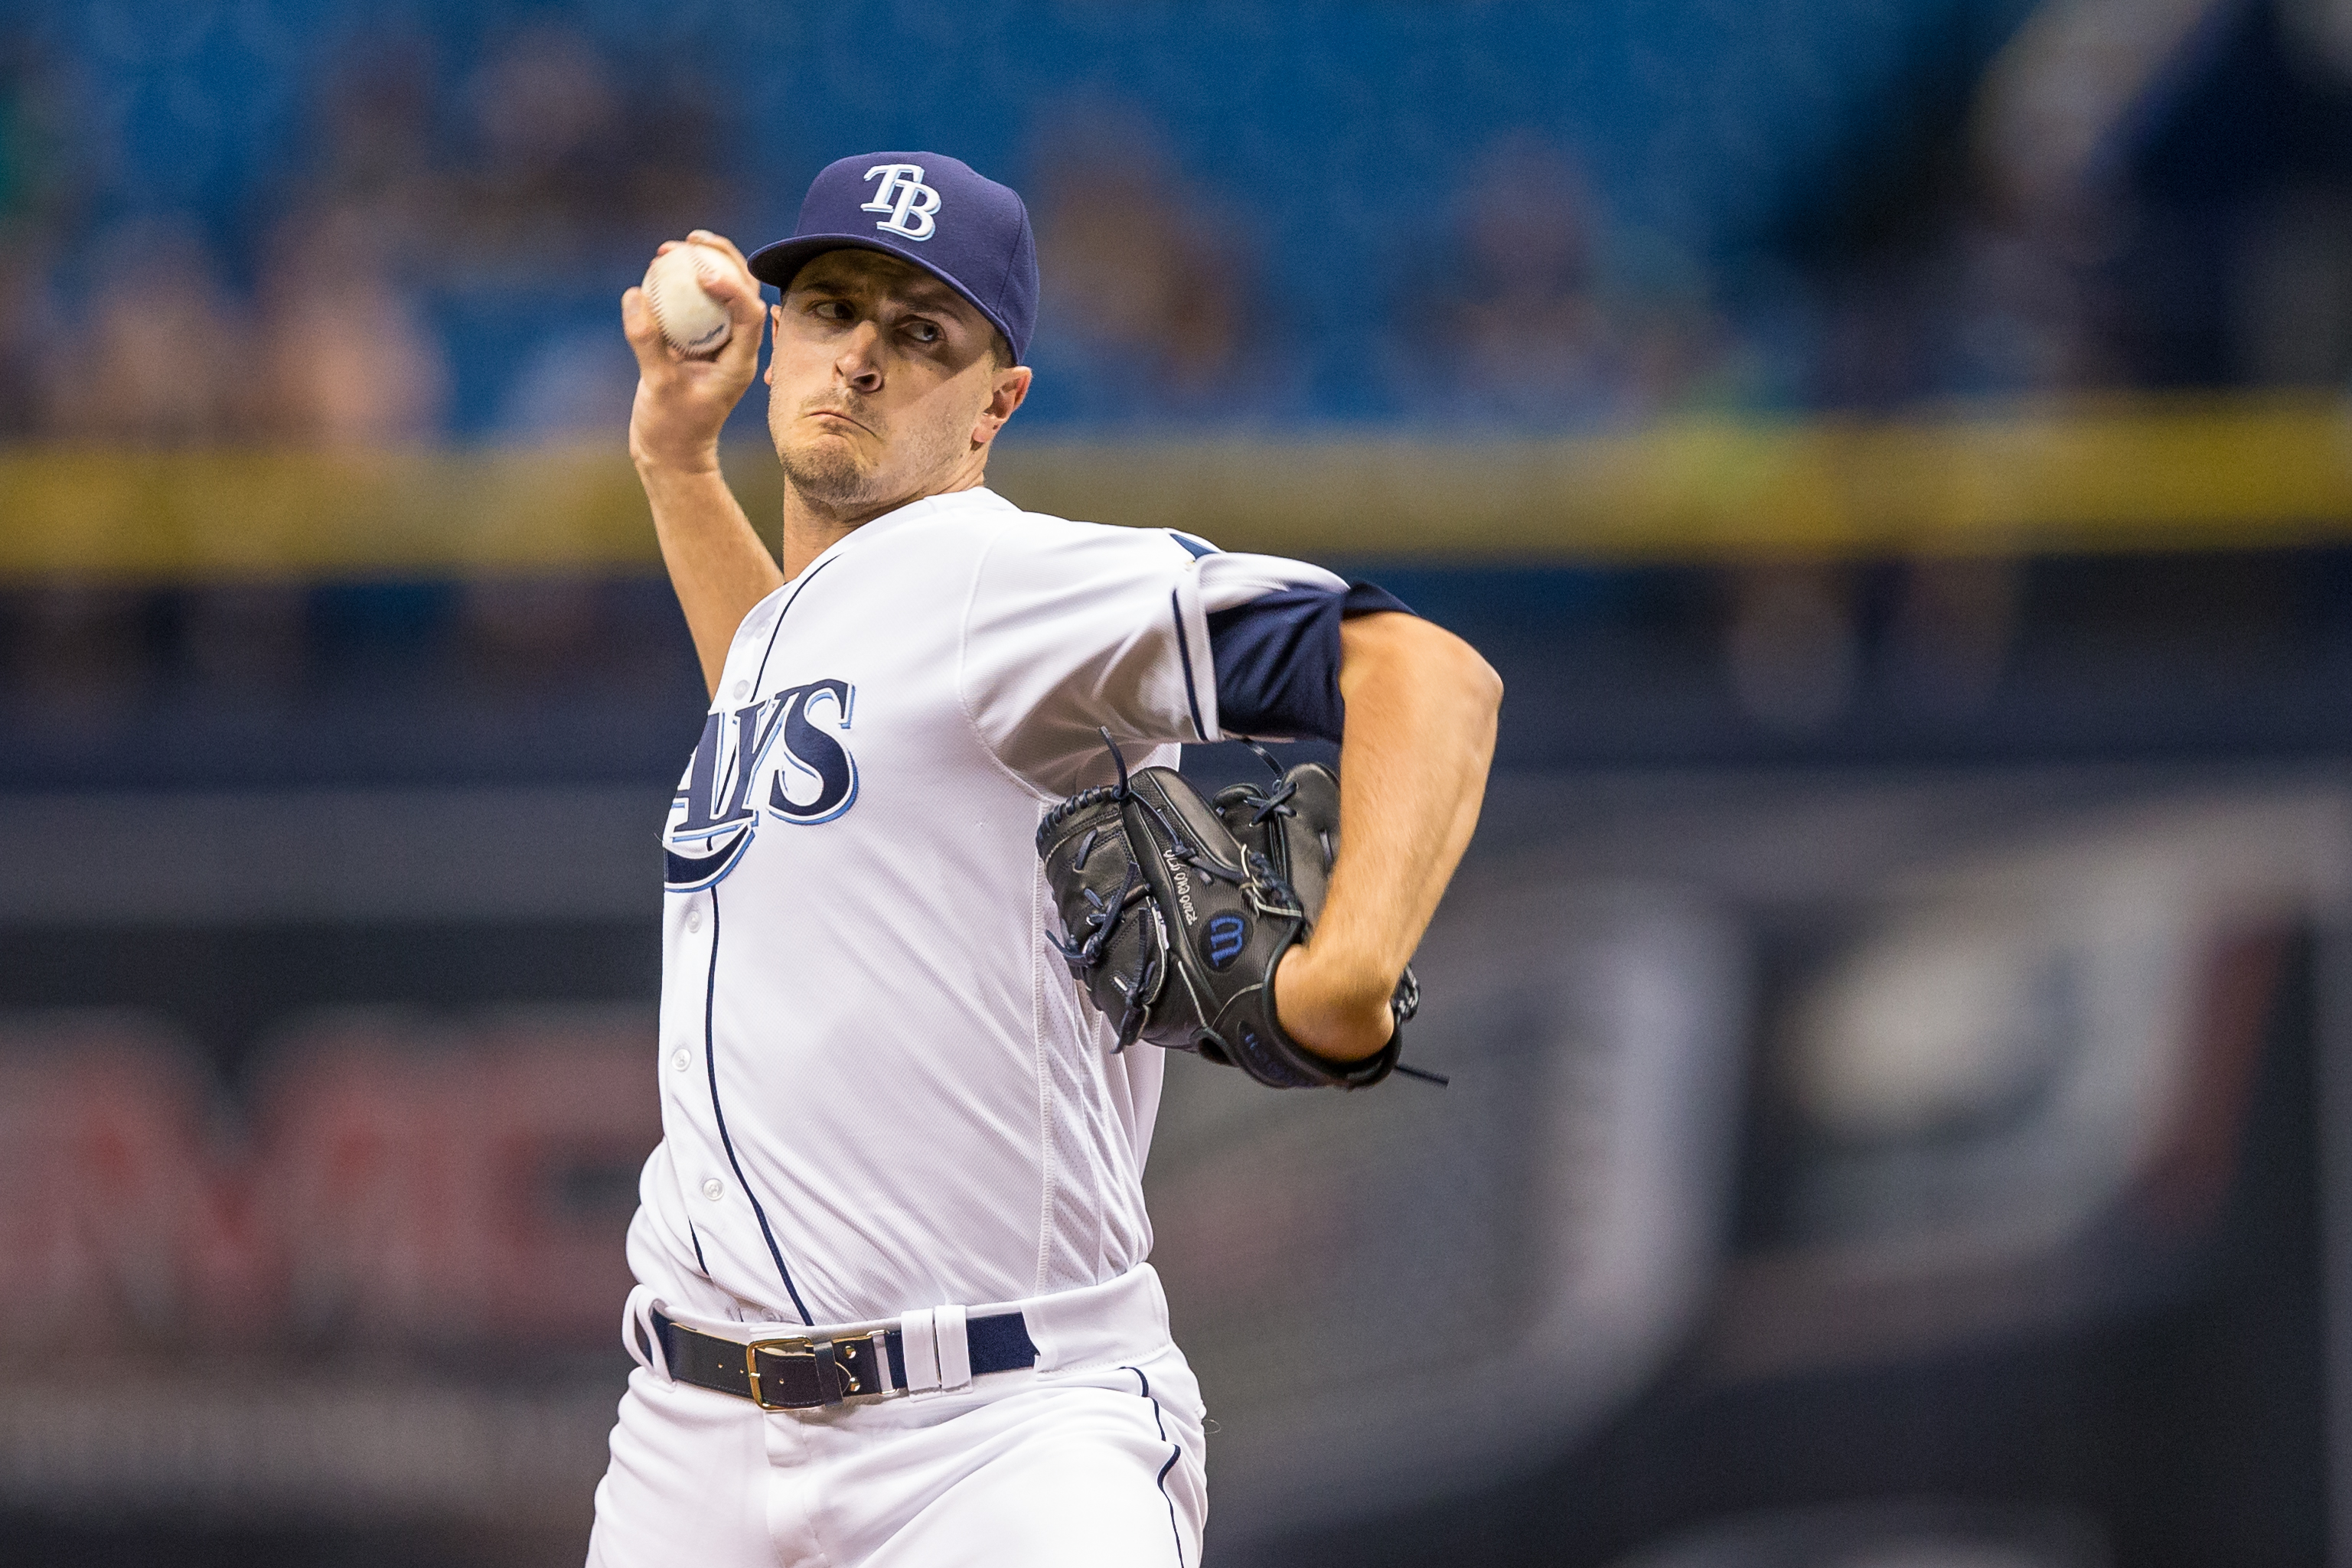 Odorizzi is 47th in the league in ERA./TRAVIS PENDERGRASS